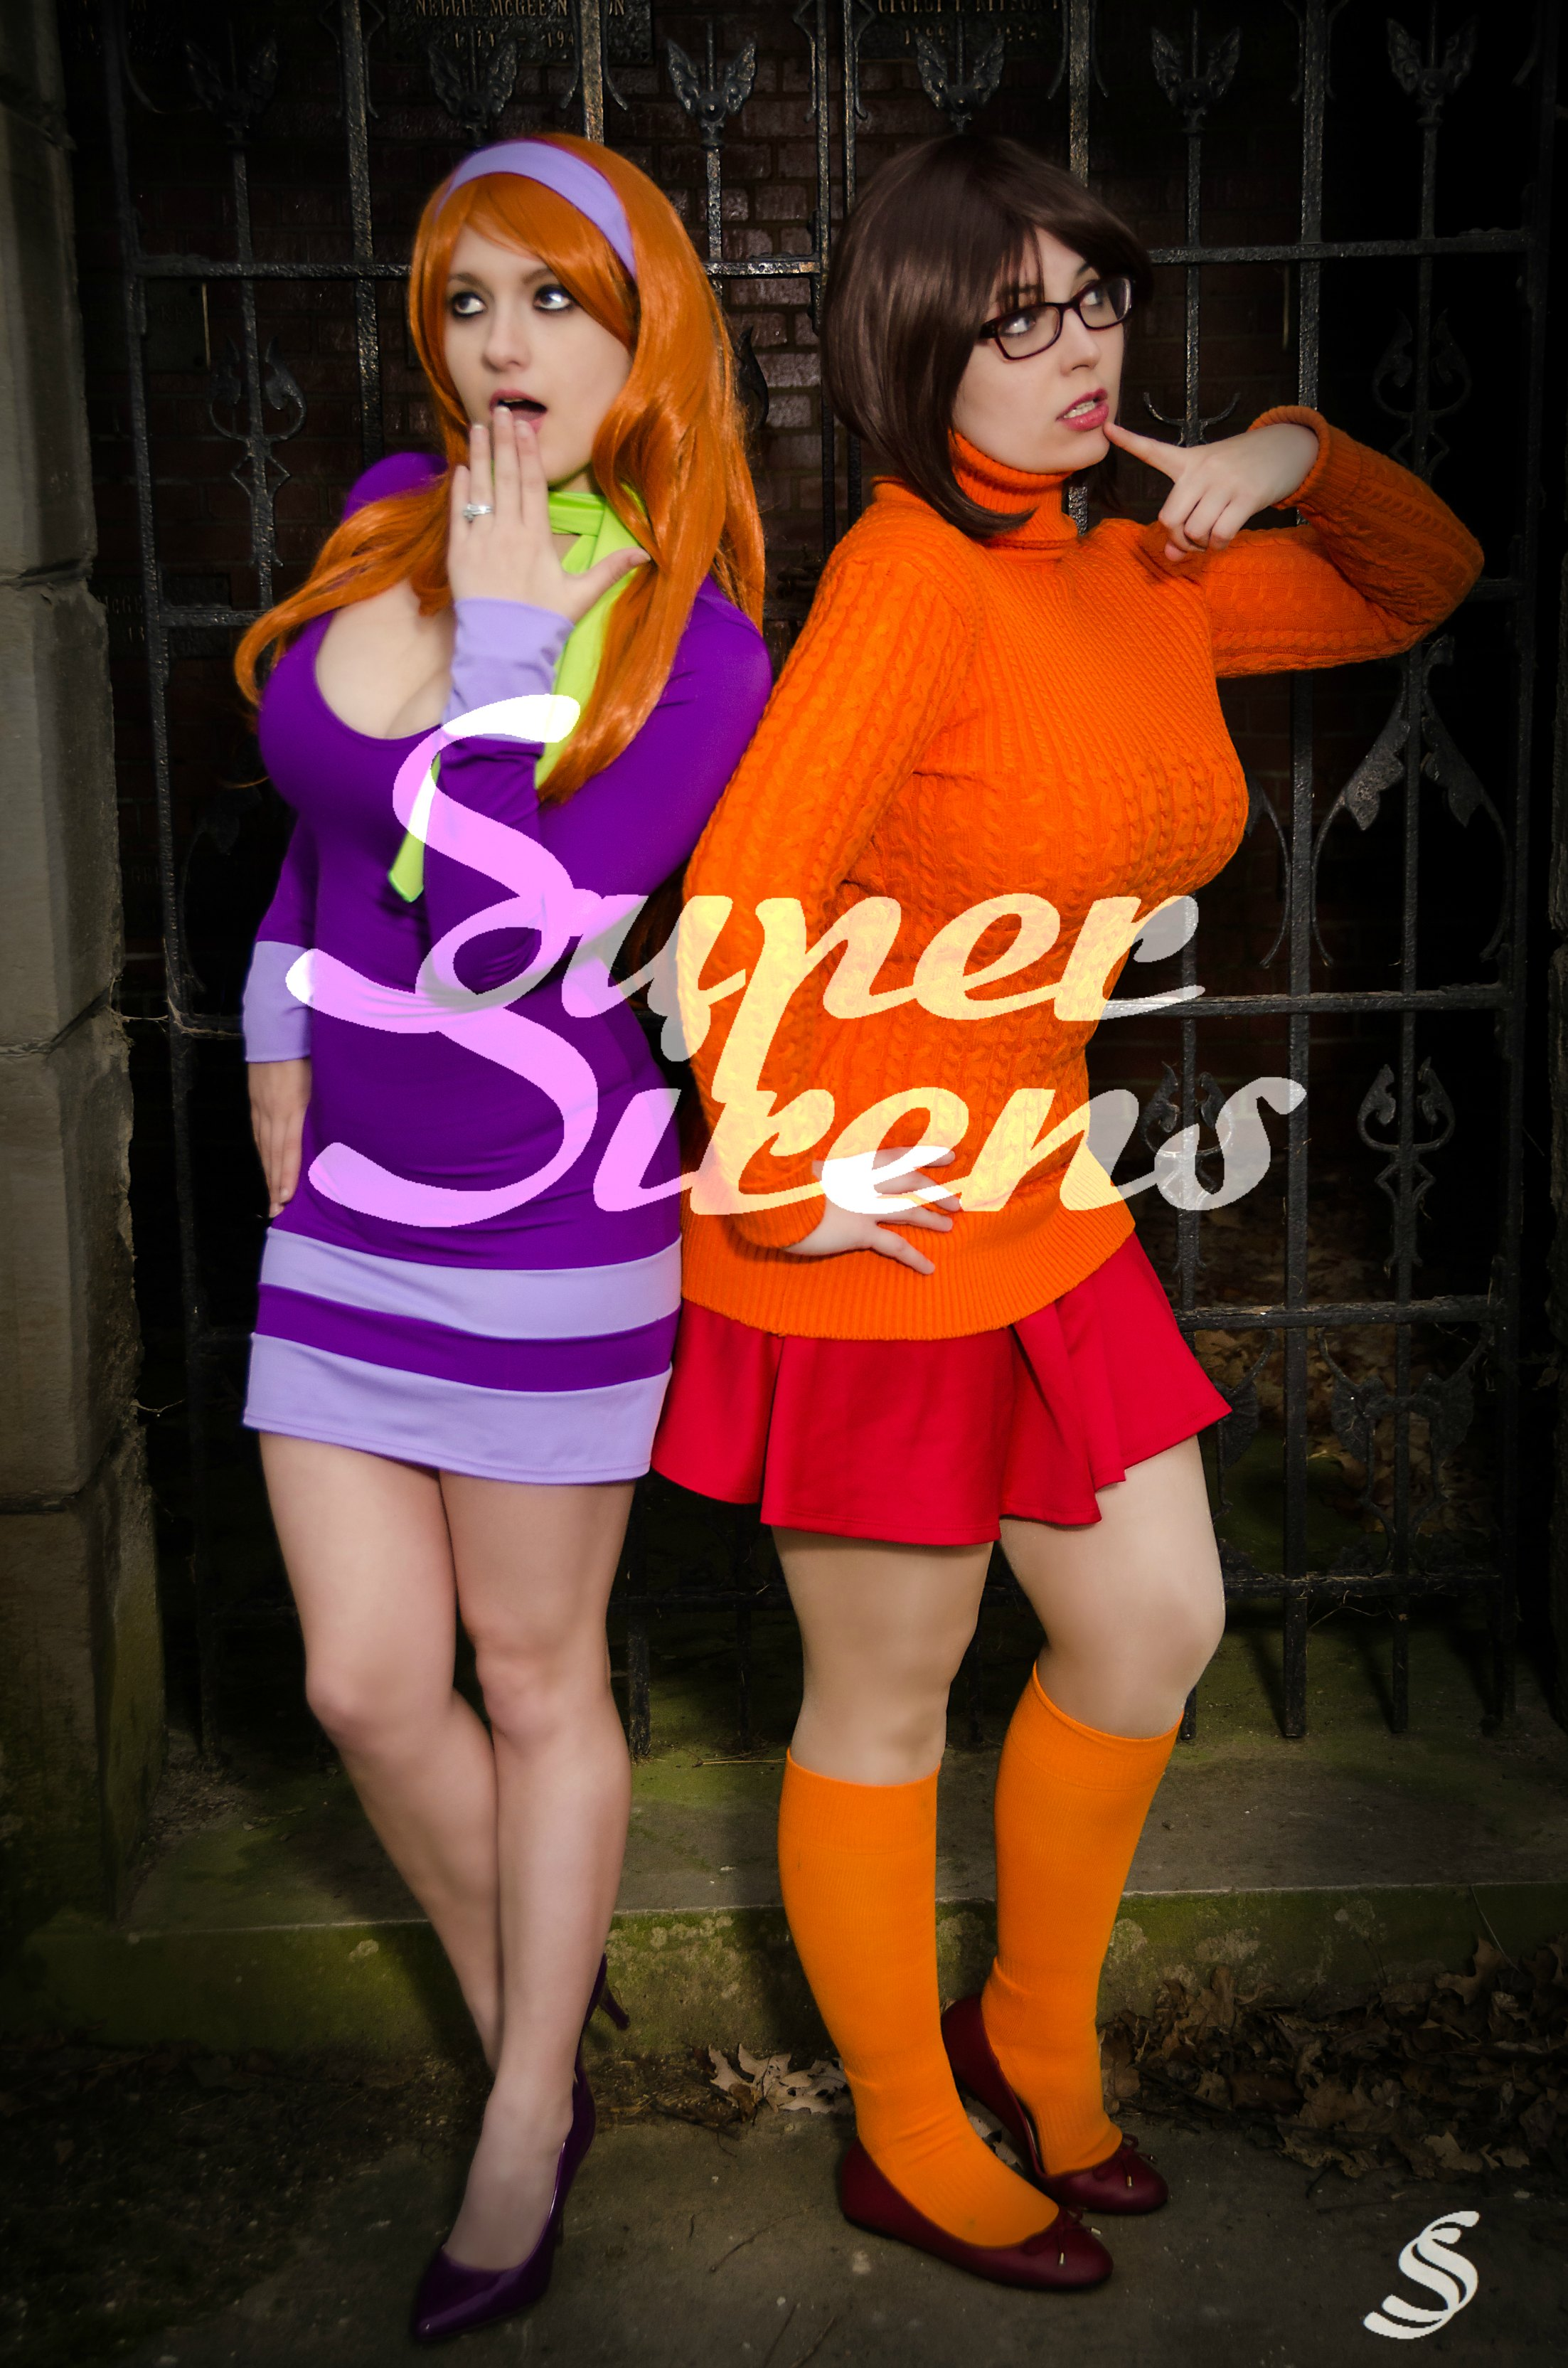 Velma and scooby porn